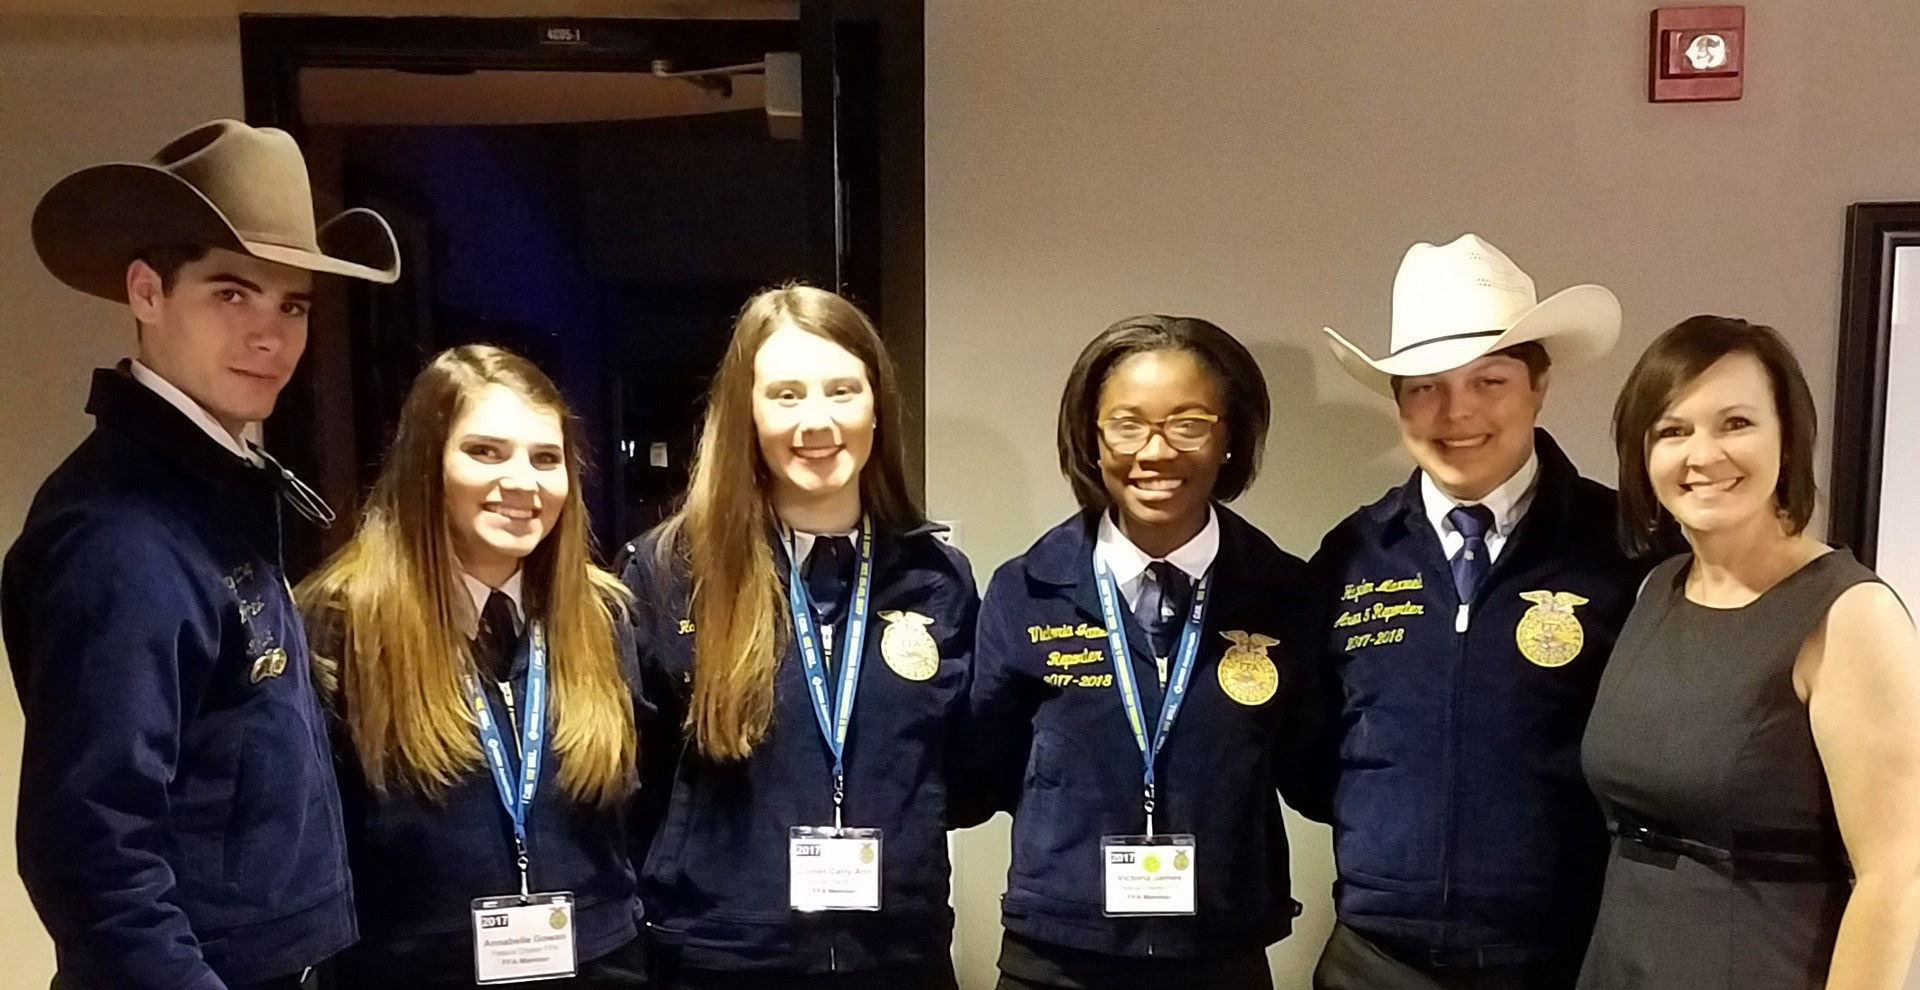 FFA officers congratulating Victoria on an excellent performance in the FFA talent show.